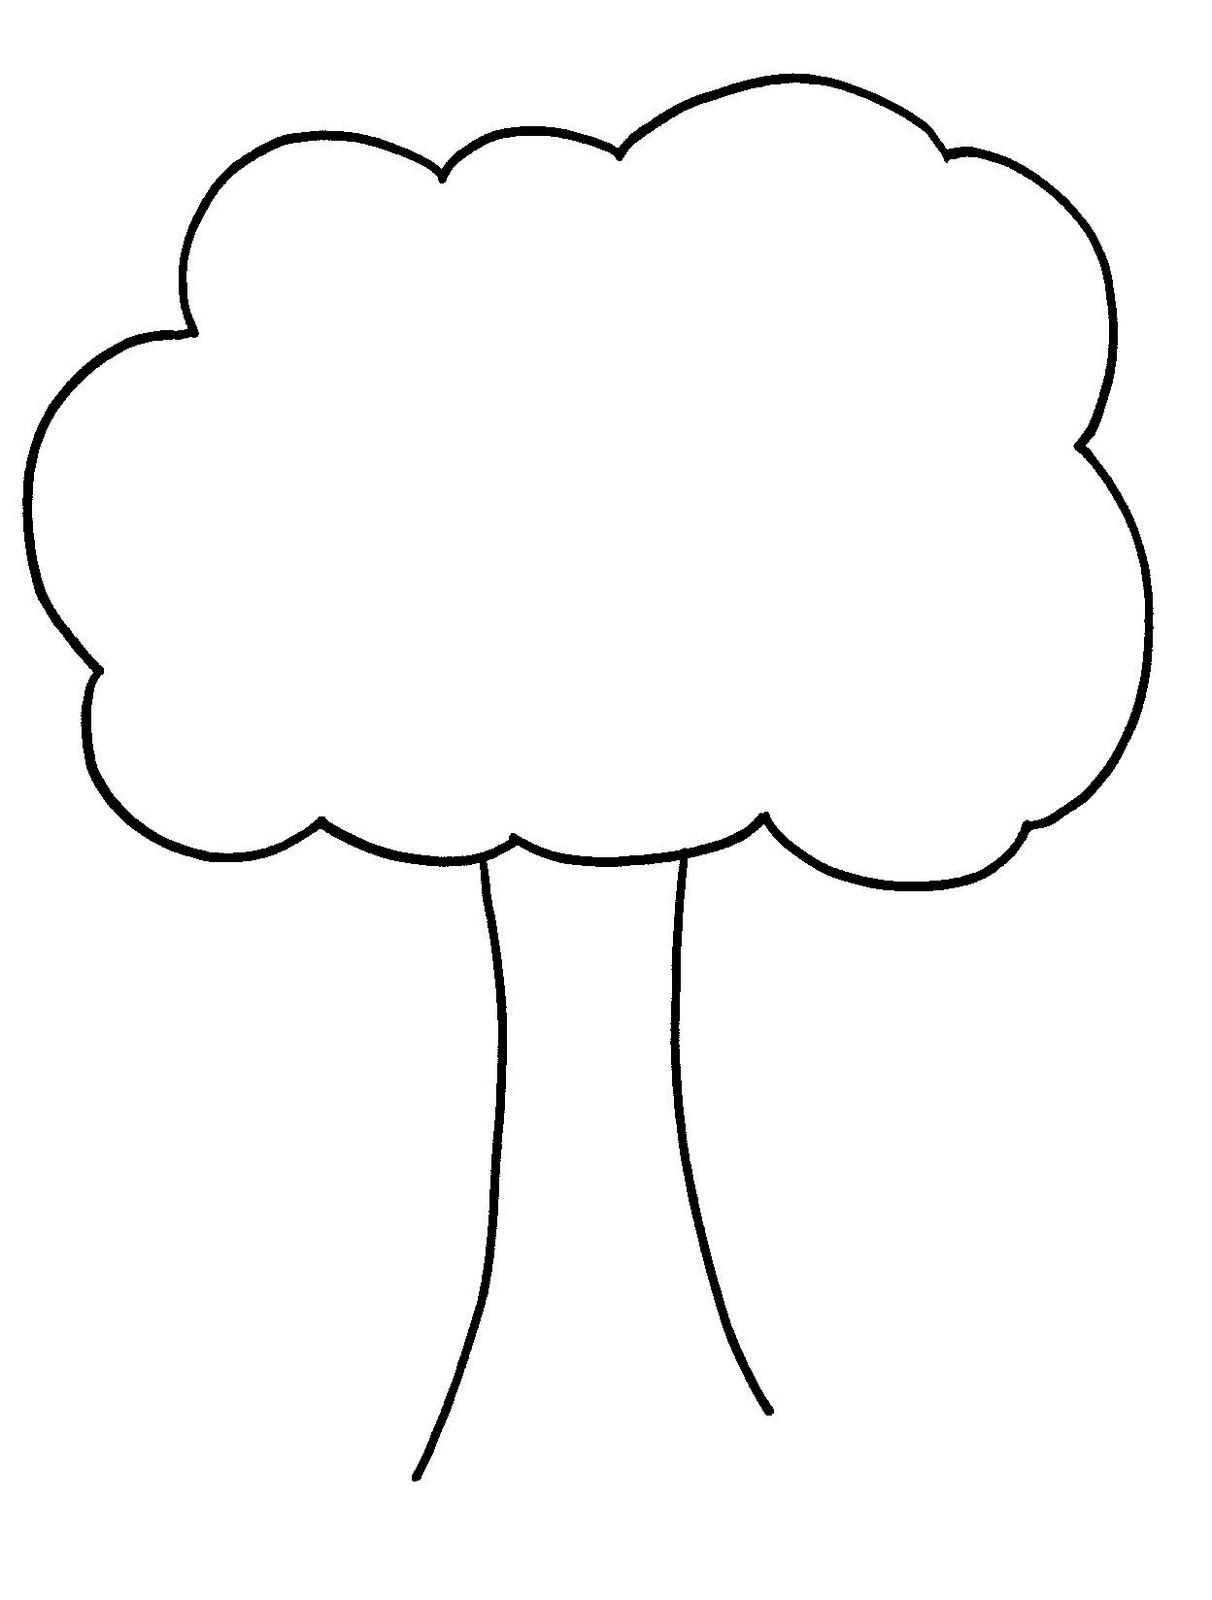 T for tissue paper tree brilliant beginnings preschool t for Preschool family tree template